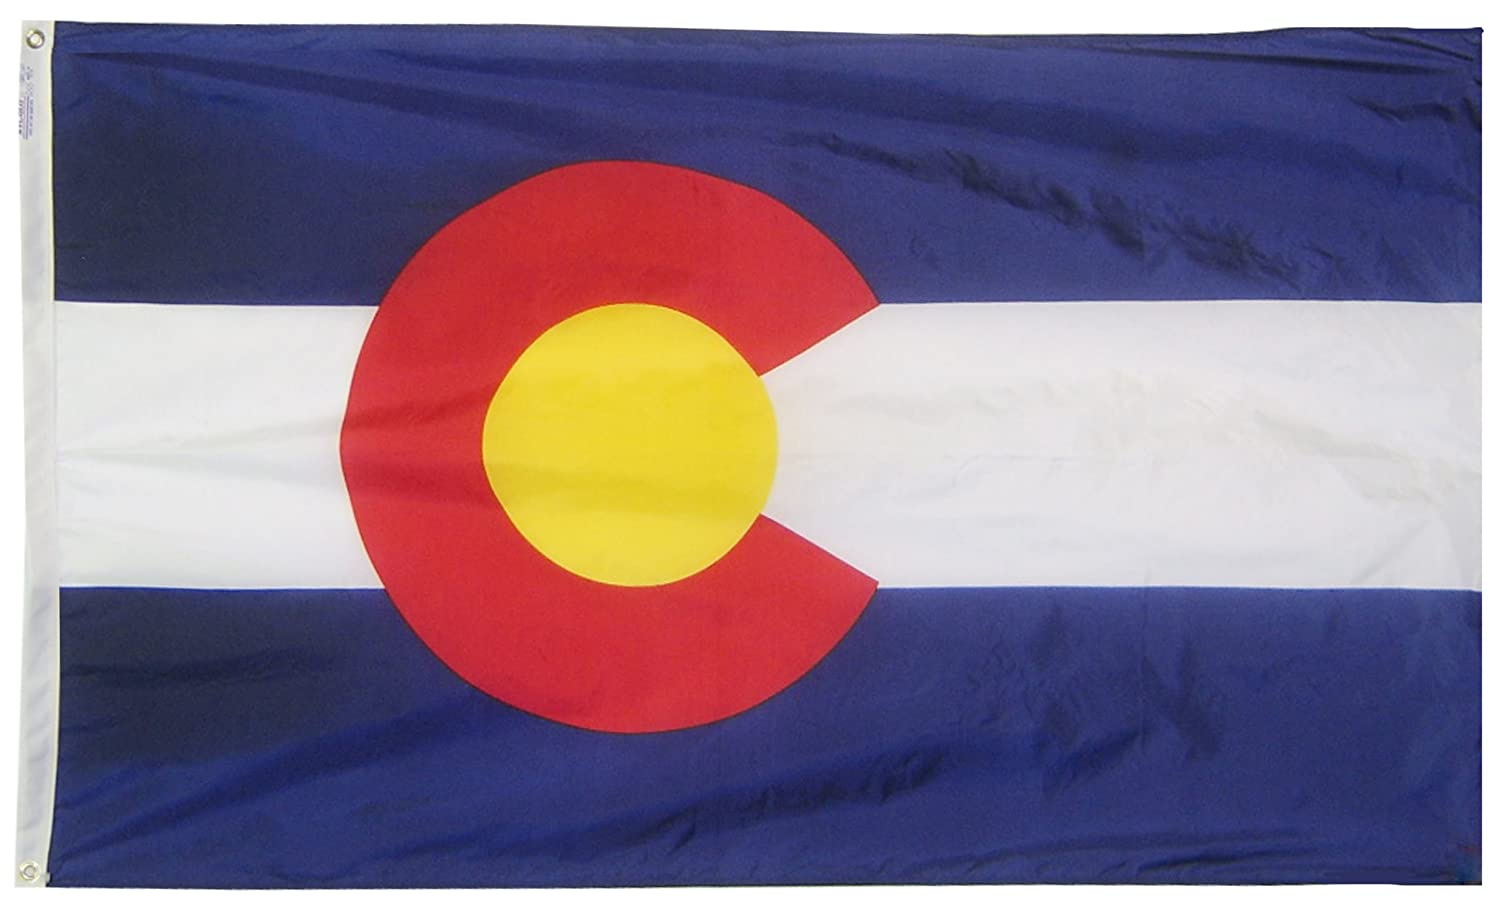 Amazon Colorado State Flag 3x5 Ft Nylon SolarGuard Nyl Glo 100 Made In USA To Official Design Specifications By Annin Flagmakers